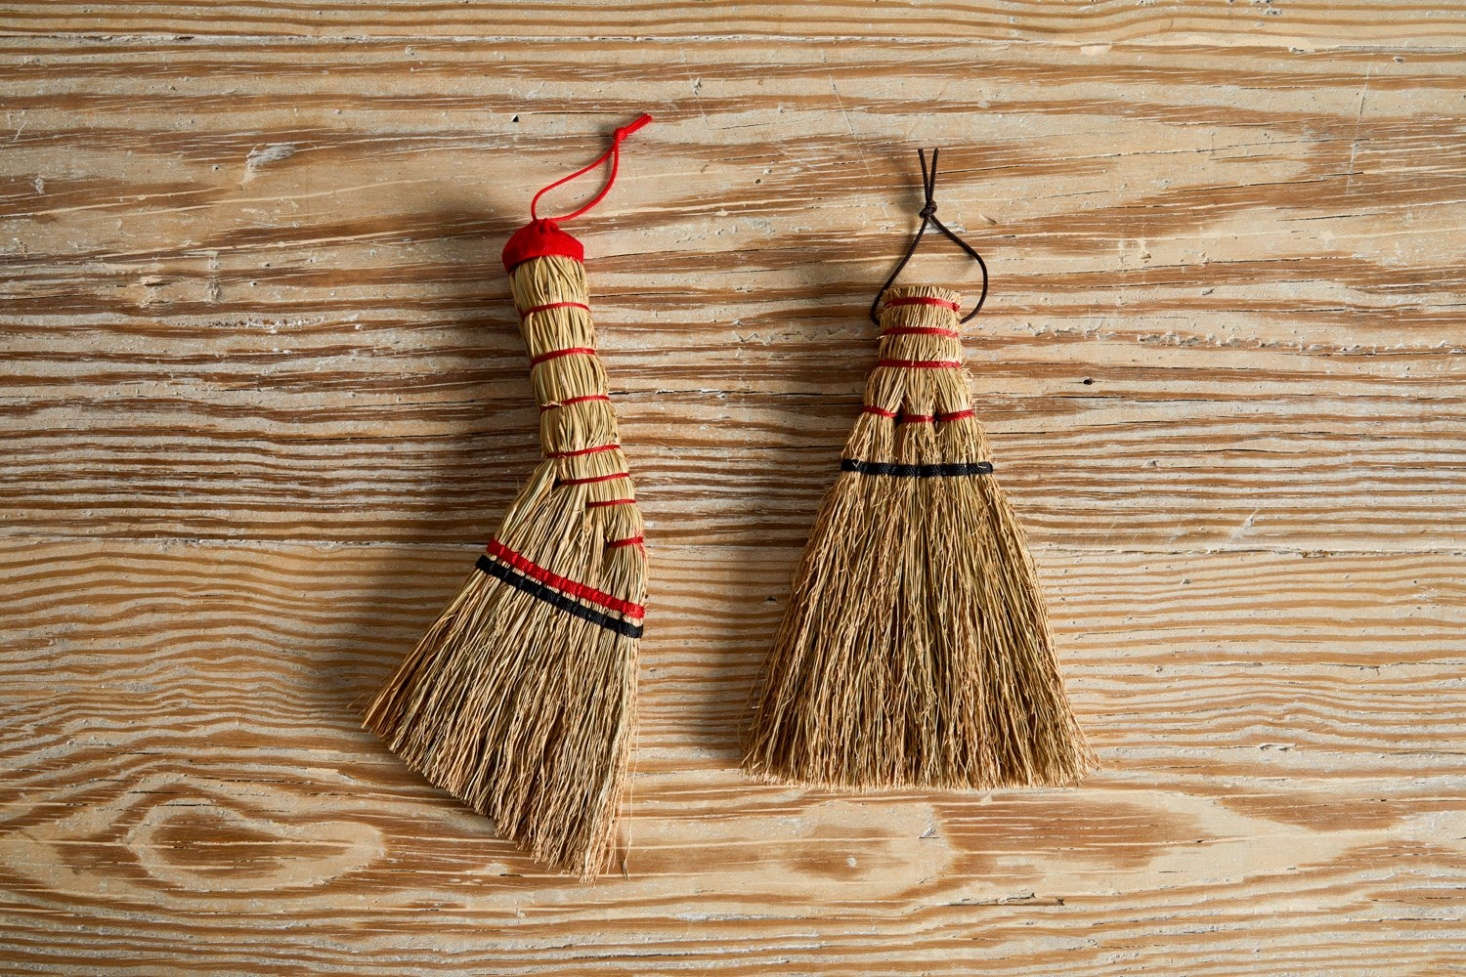 These small Japanese Hand Brooms are $3